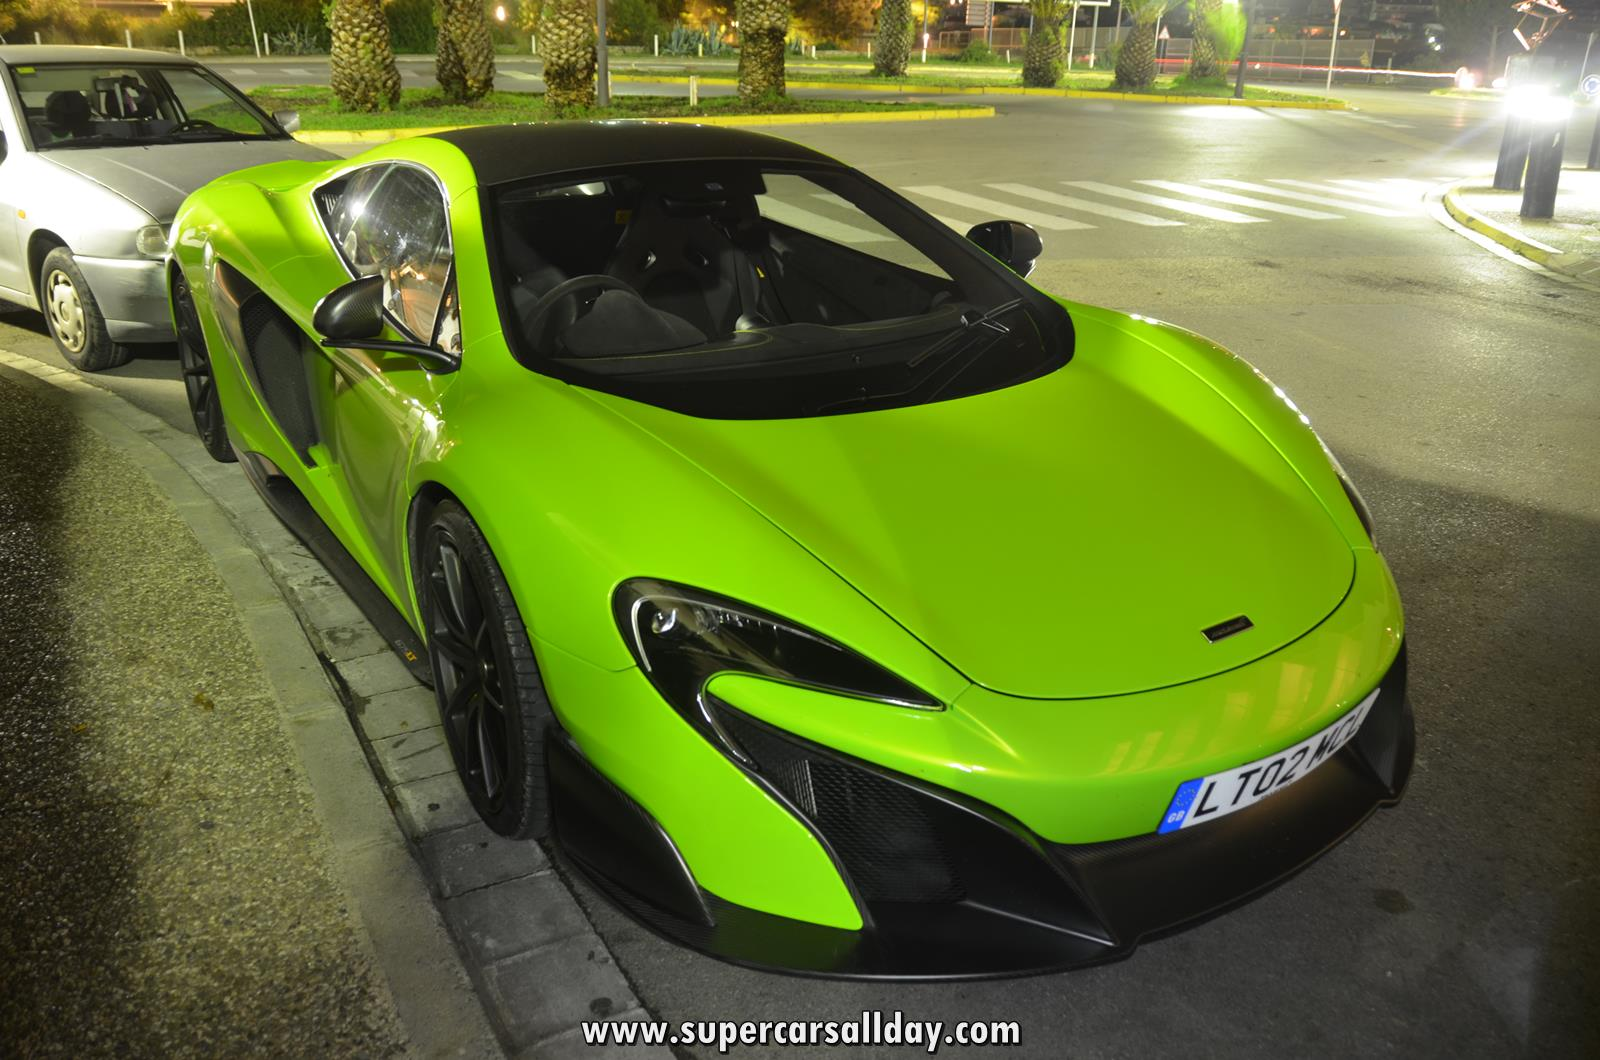 Mclaren 675lt Napier Green In Spain Supercars All Day